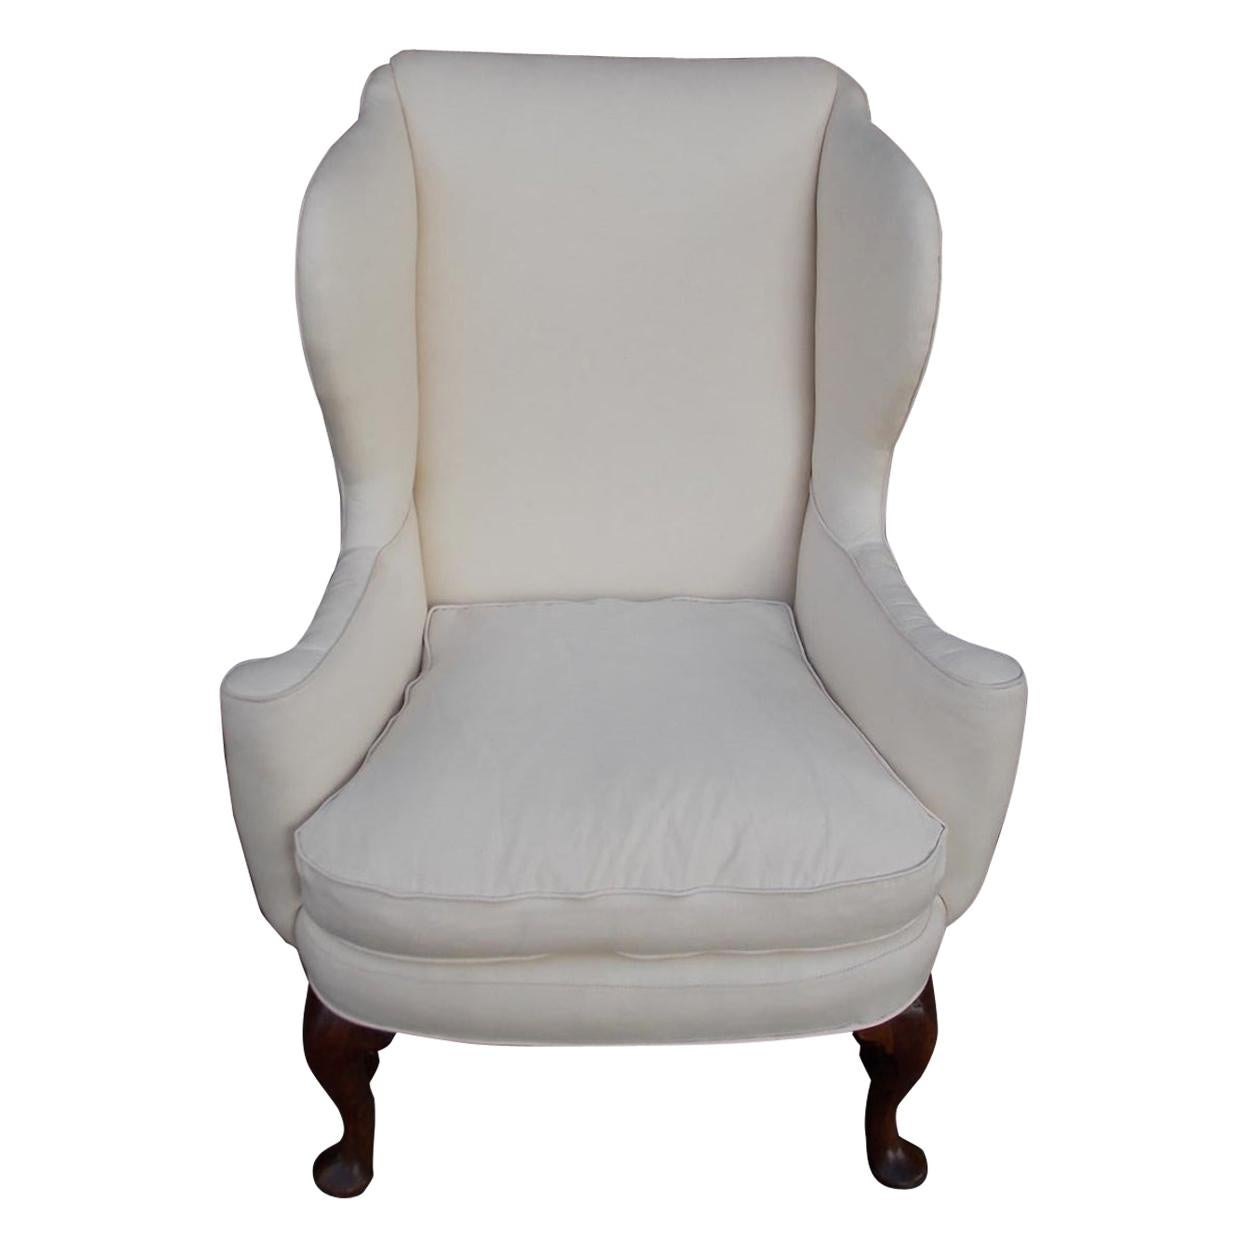 American Queen Anne Walnut Upholstered Wing Back Chair, Rhode Island, Circa 1740